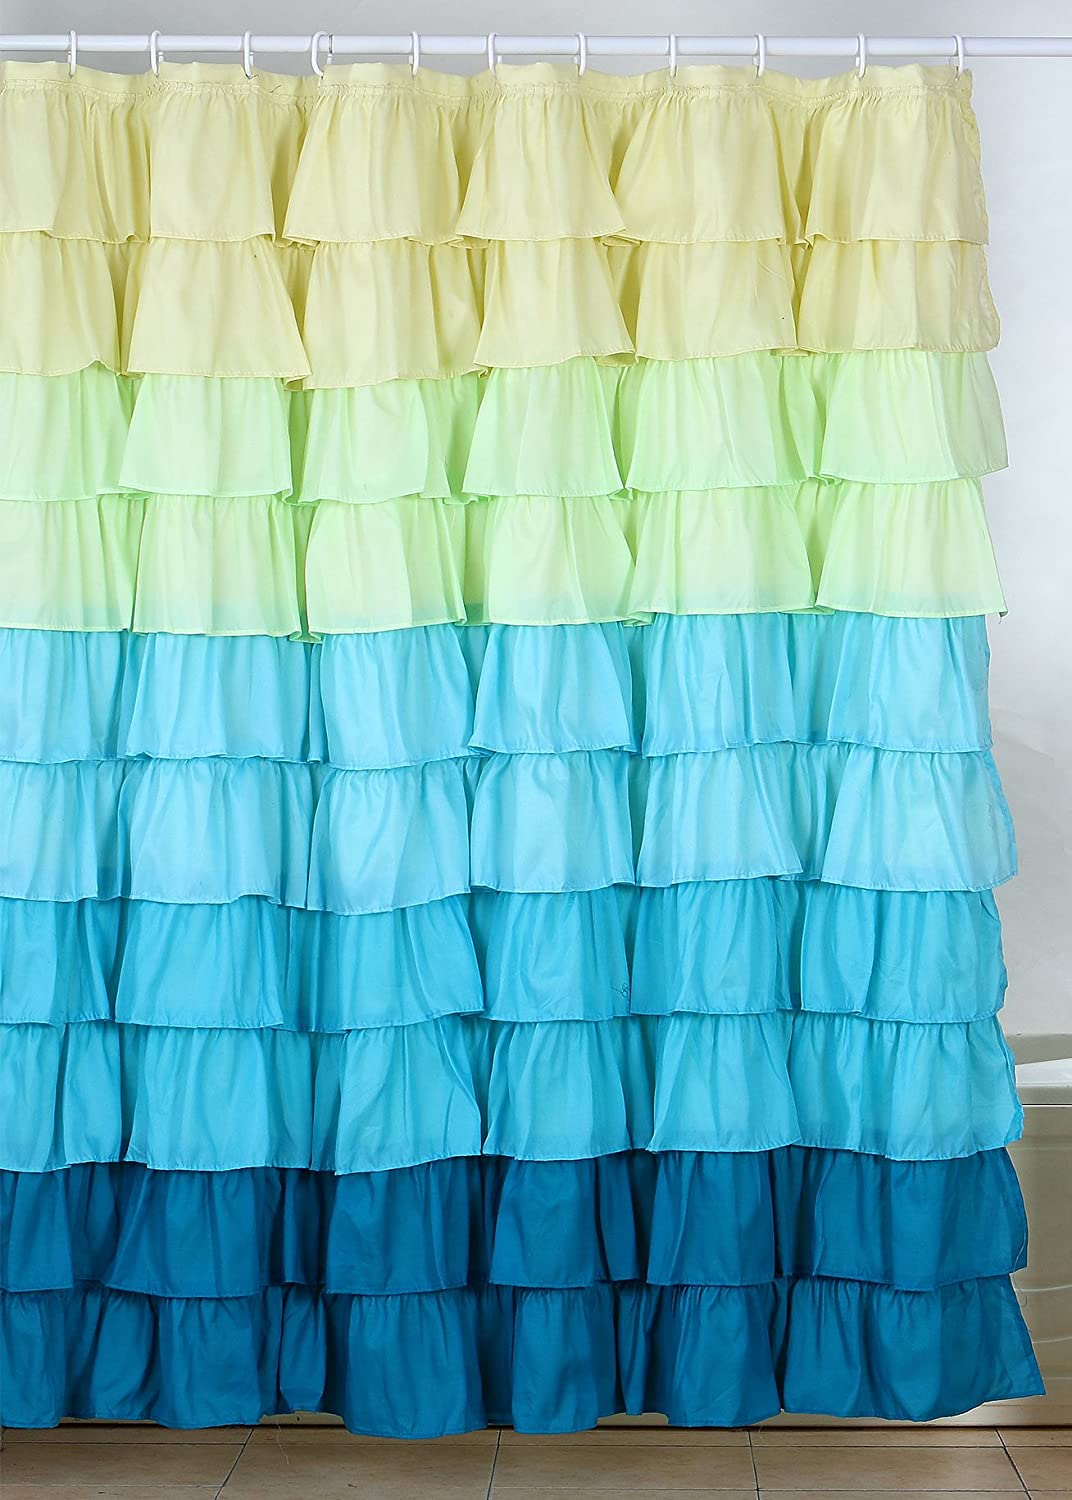 Lavish Home Spring Ruffle Shower Curtain With Buttonhole by Lavish Home